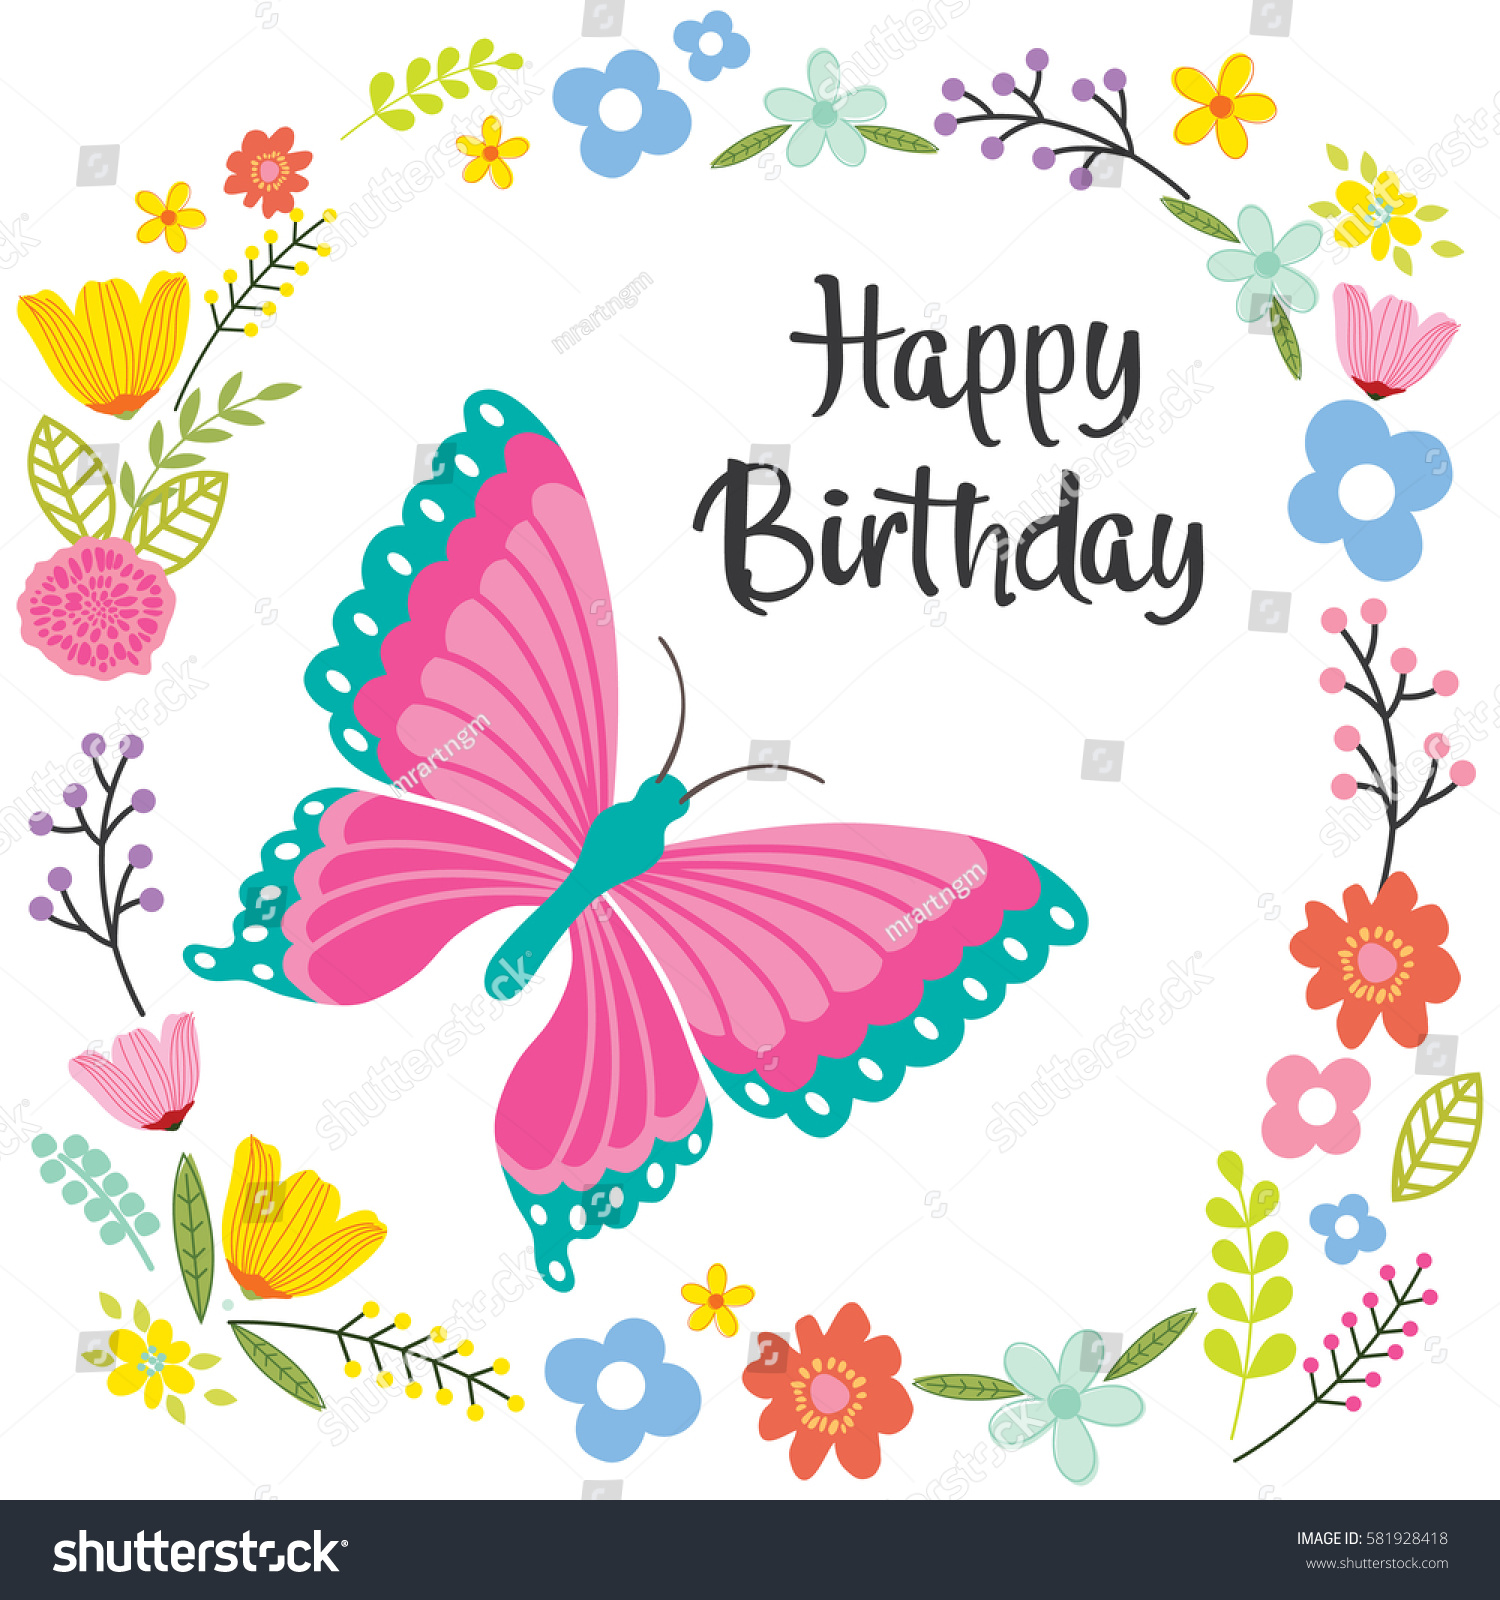 Birthday Card Butterfly Flowers Design Stock Vector Royalty Free